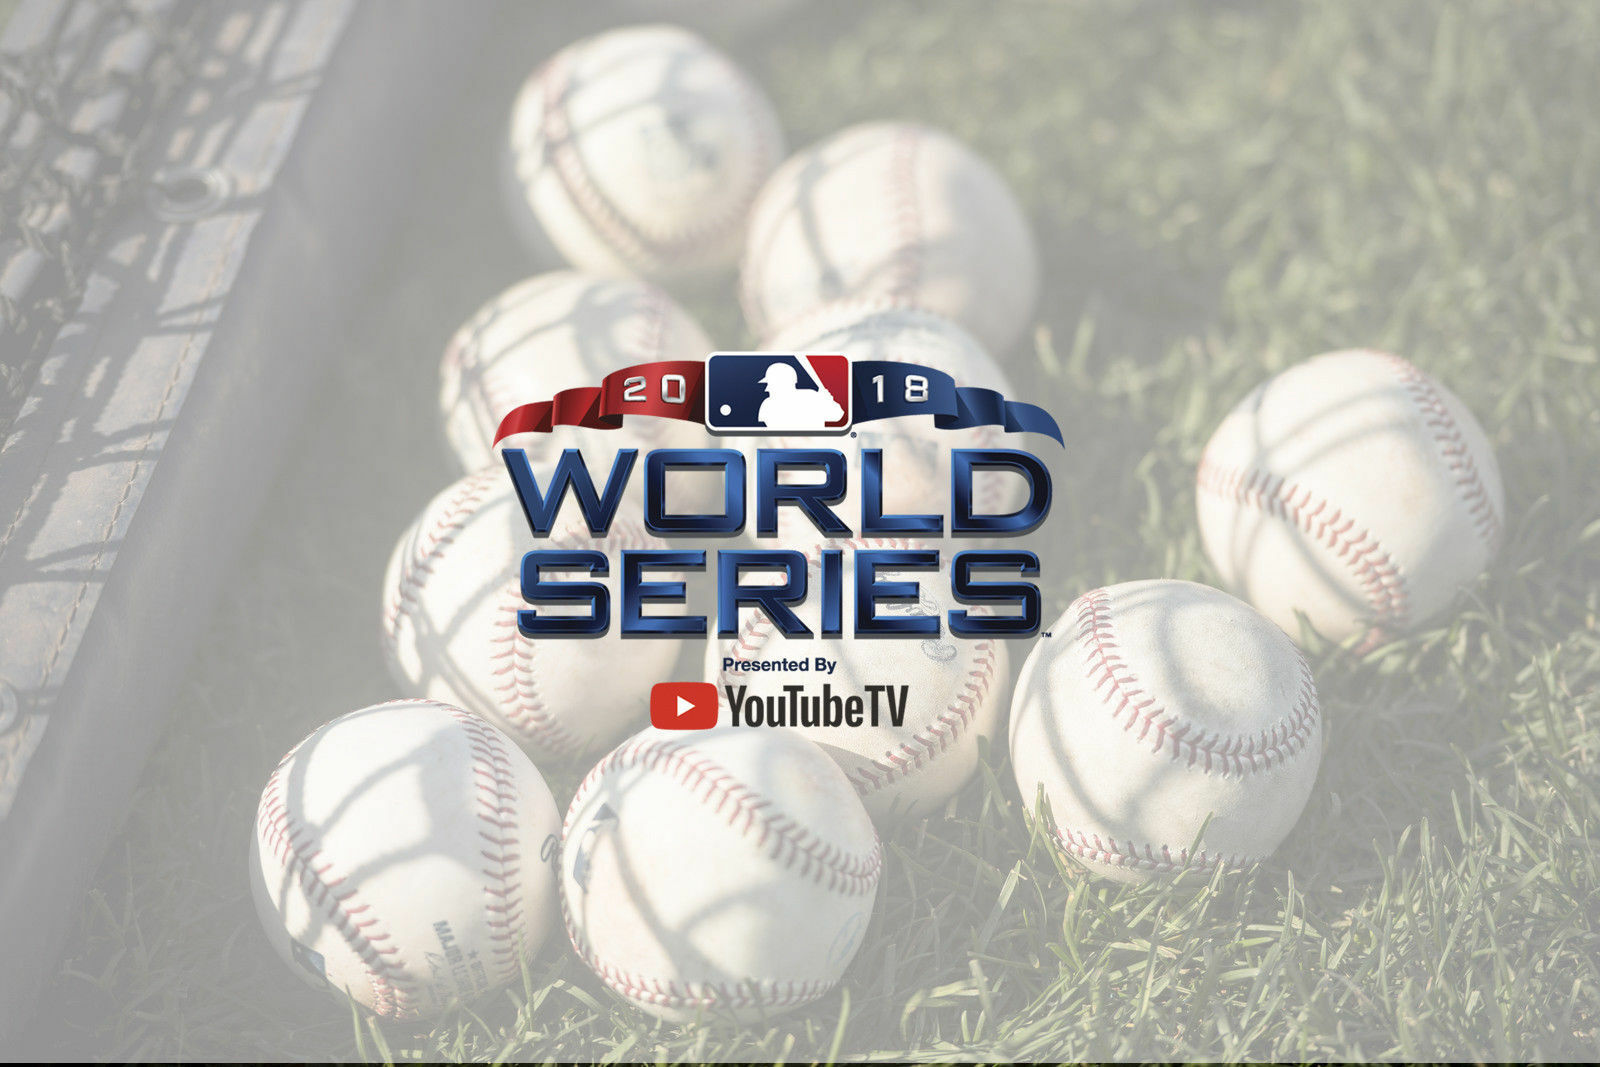 los angeles dodgers at boston red sox home game 1 series game 1 - Twas The Night Before Christmas Youtube